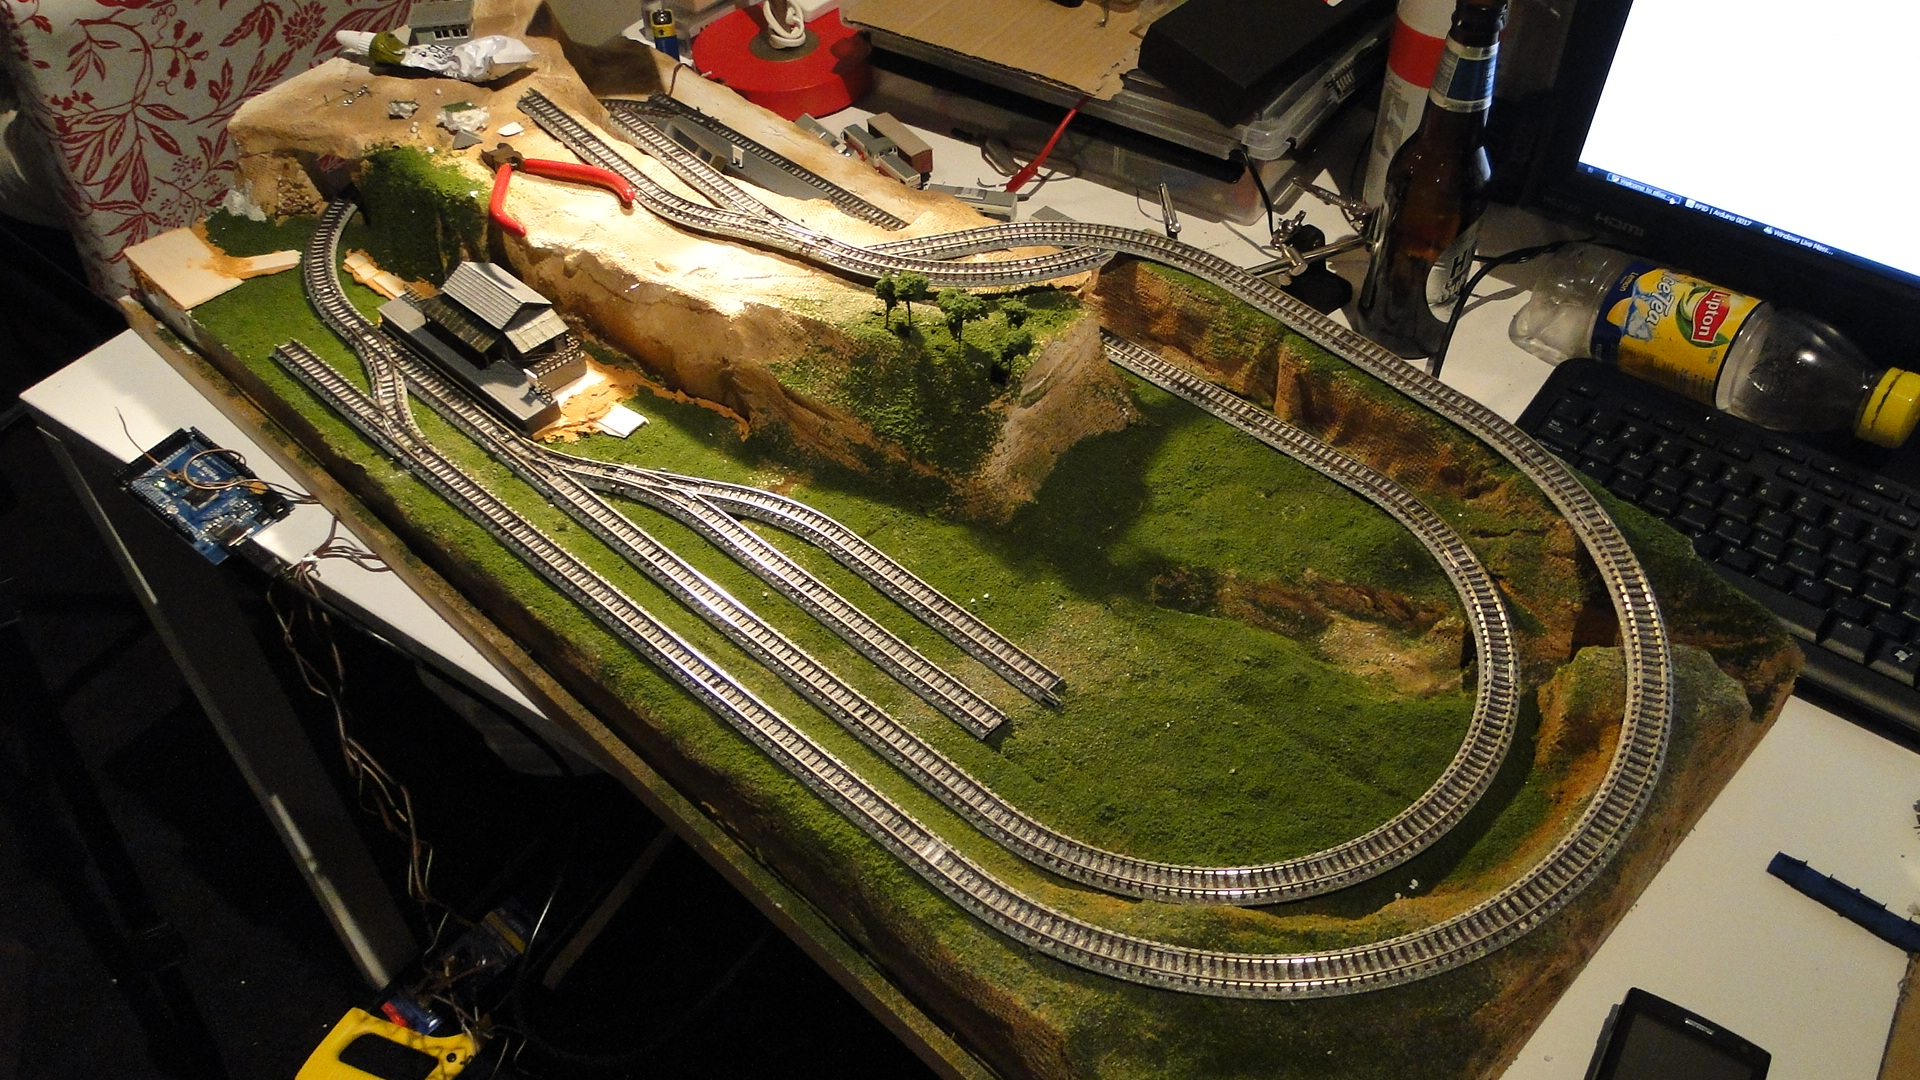 Tracking trains with an Arduino and RFID : Implemented